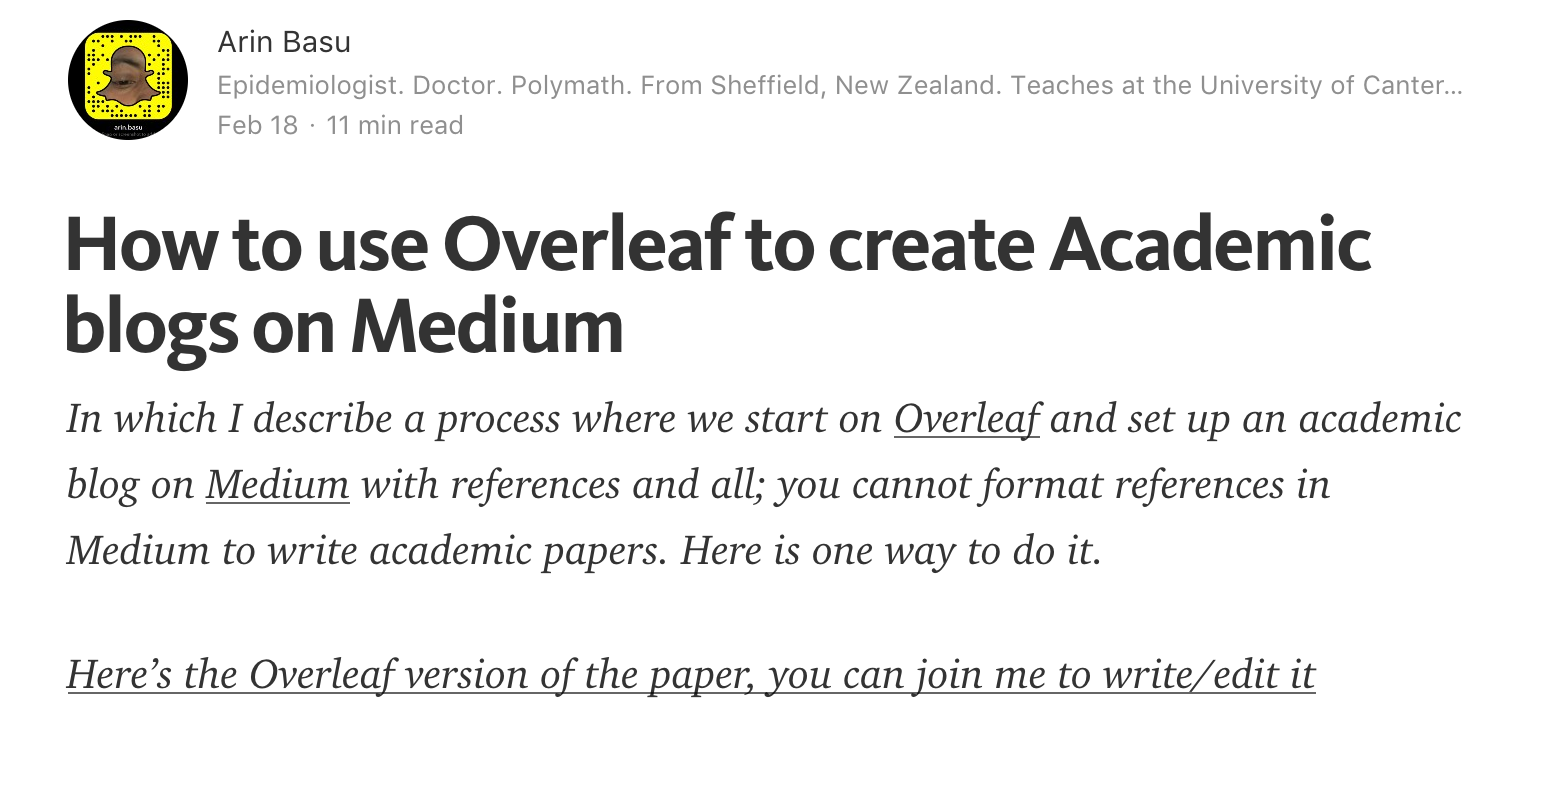 How to use Overleaf to create Academic blogs on Medium